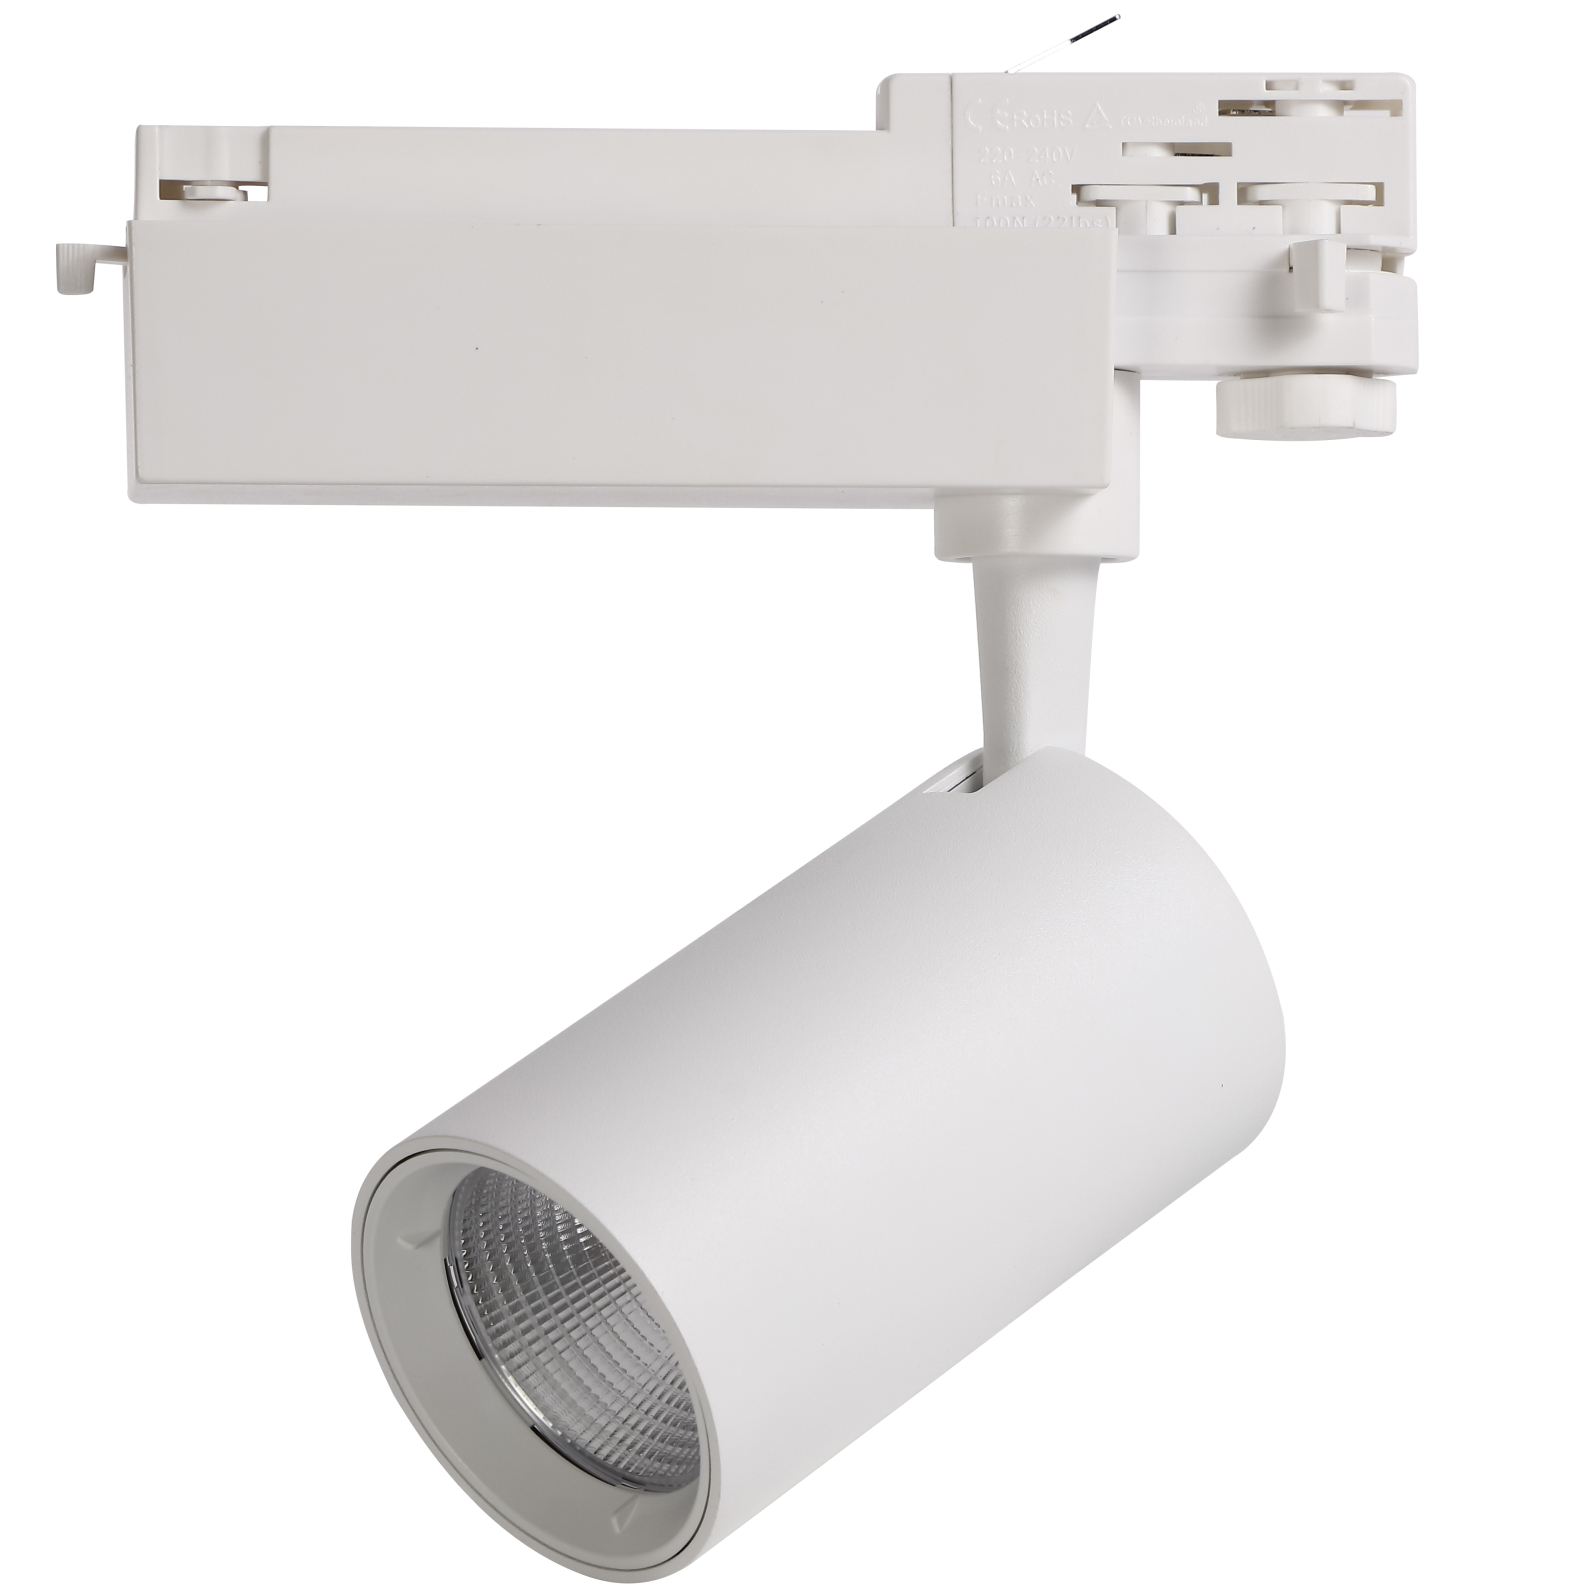 TB Series Track Light with horizontal power box